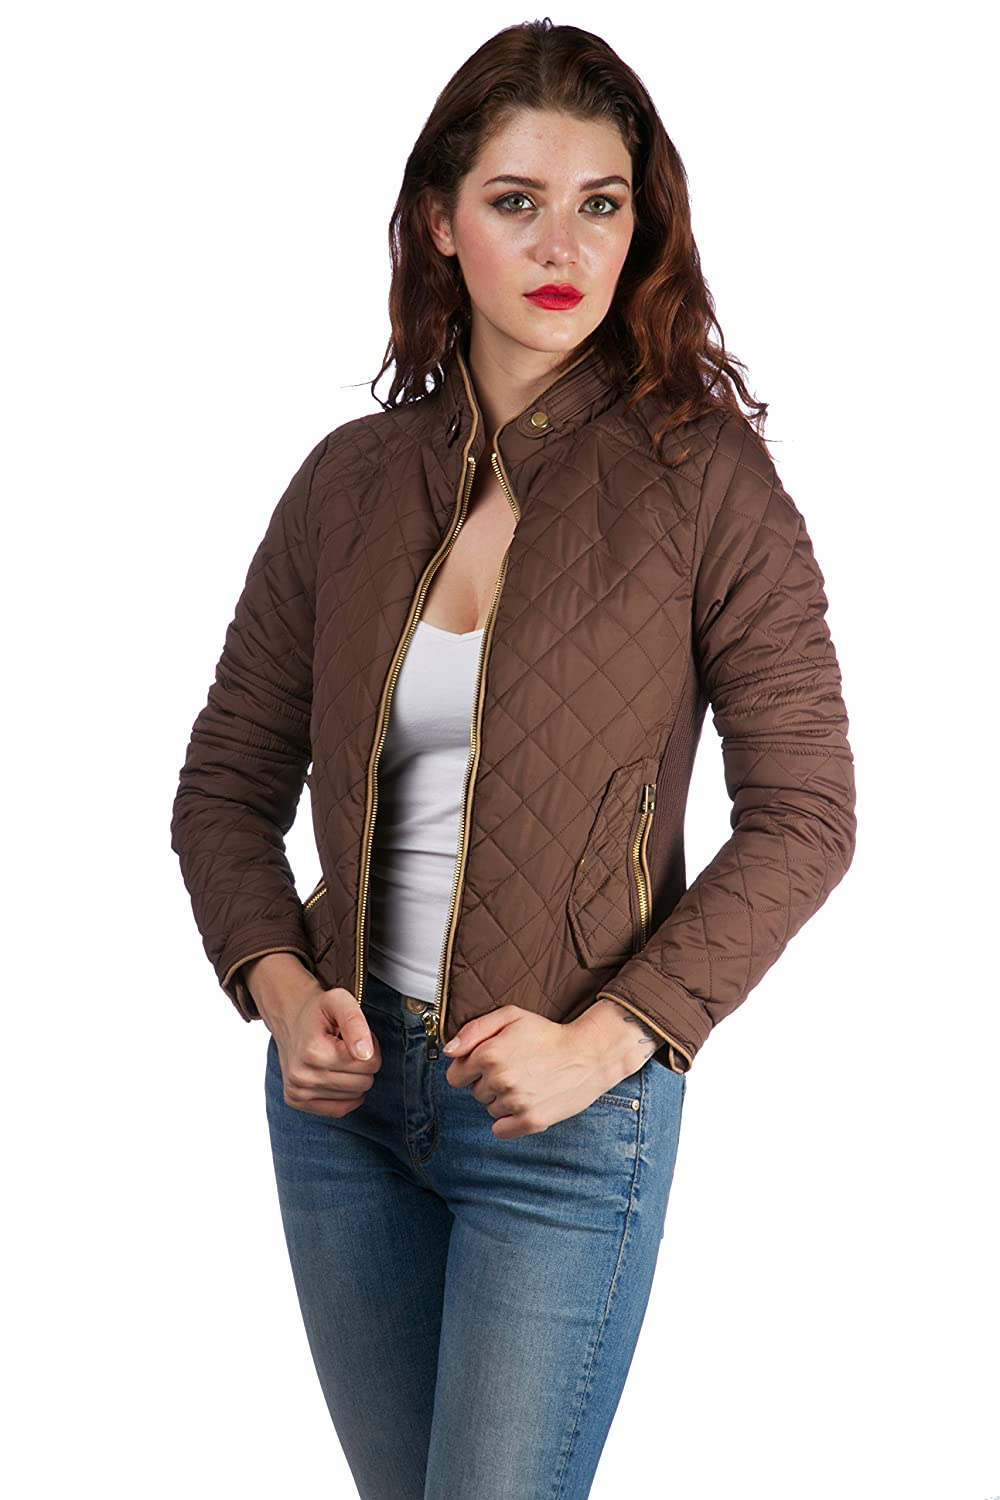 Hollywood Star Fashion Women's Long sleeves quilted coat Zip up bomber jacket